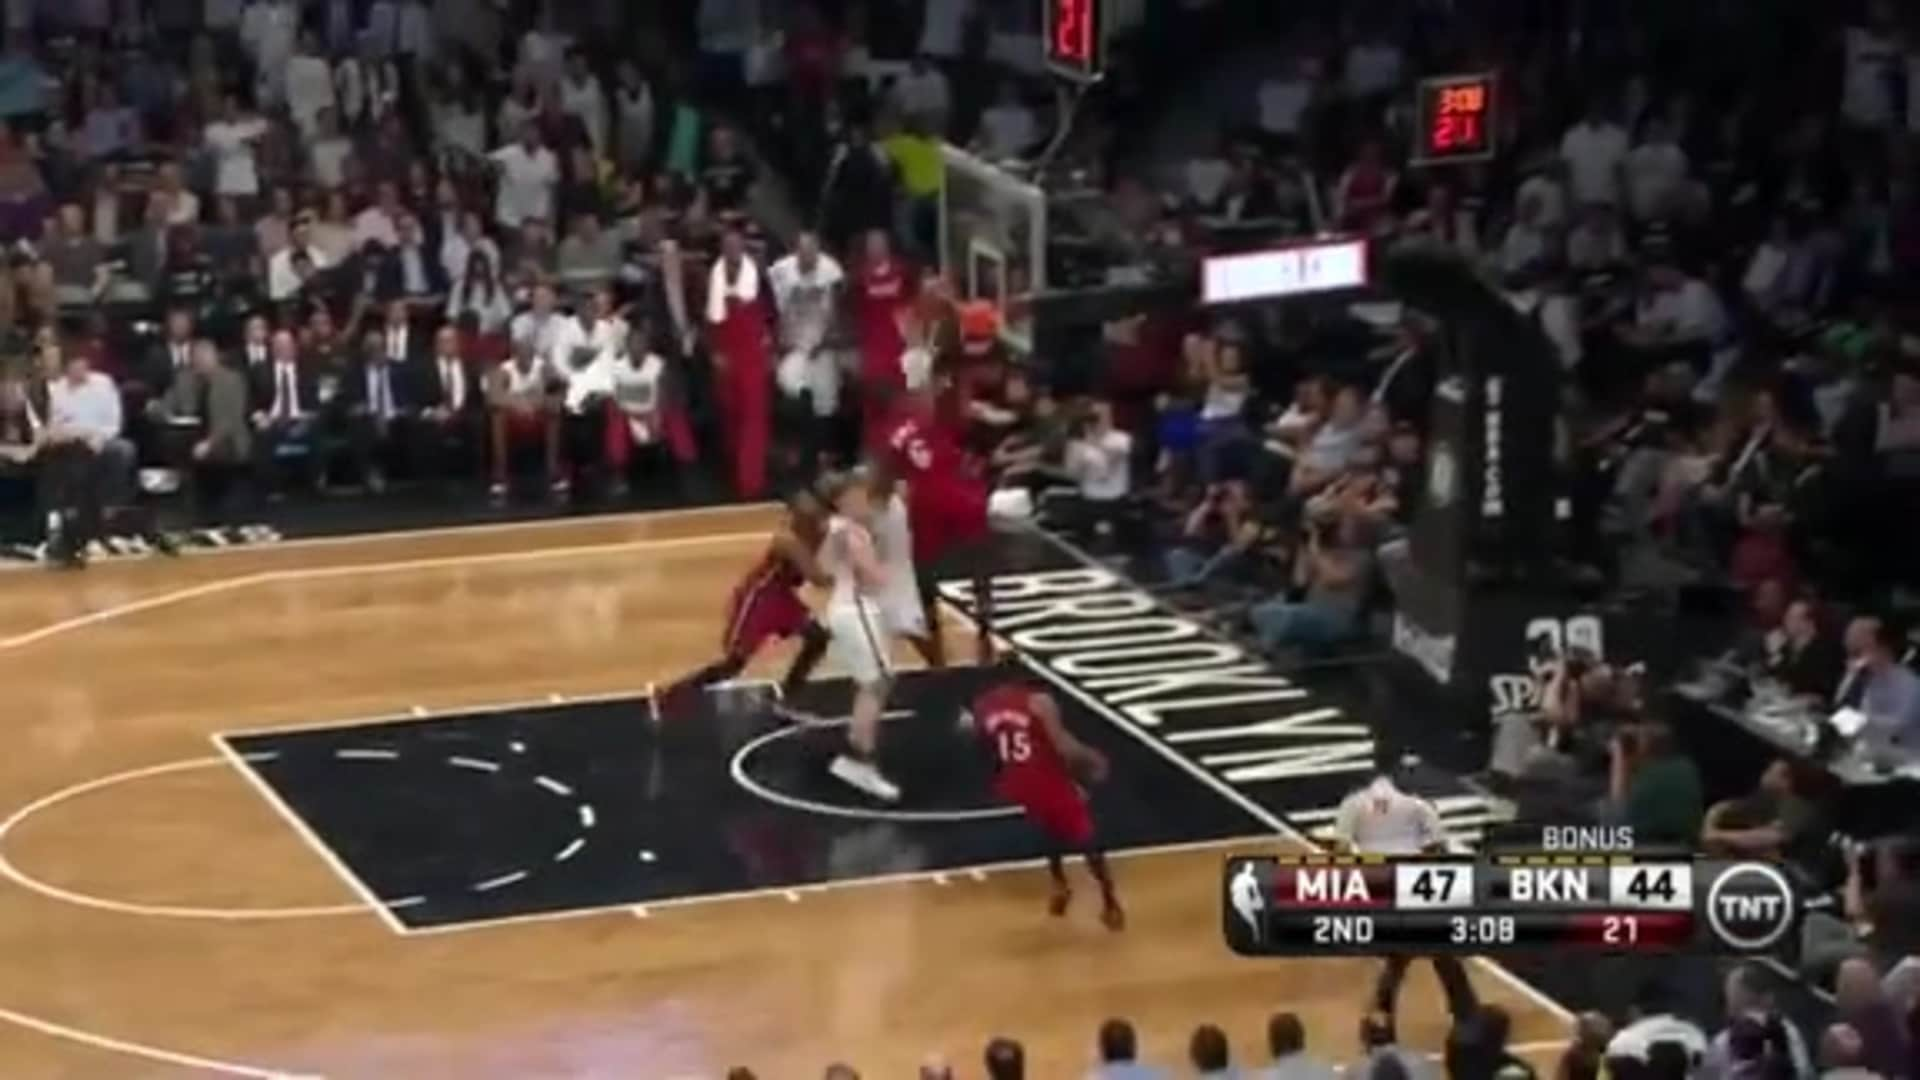 LeBron Throws Down The Tomahawk Jam